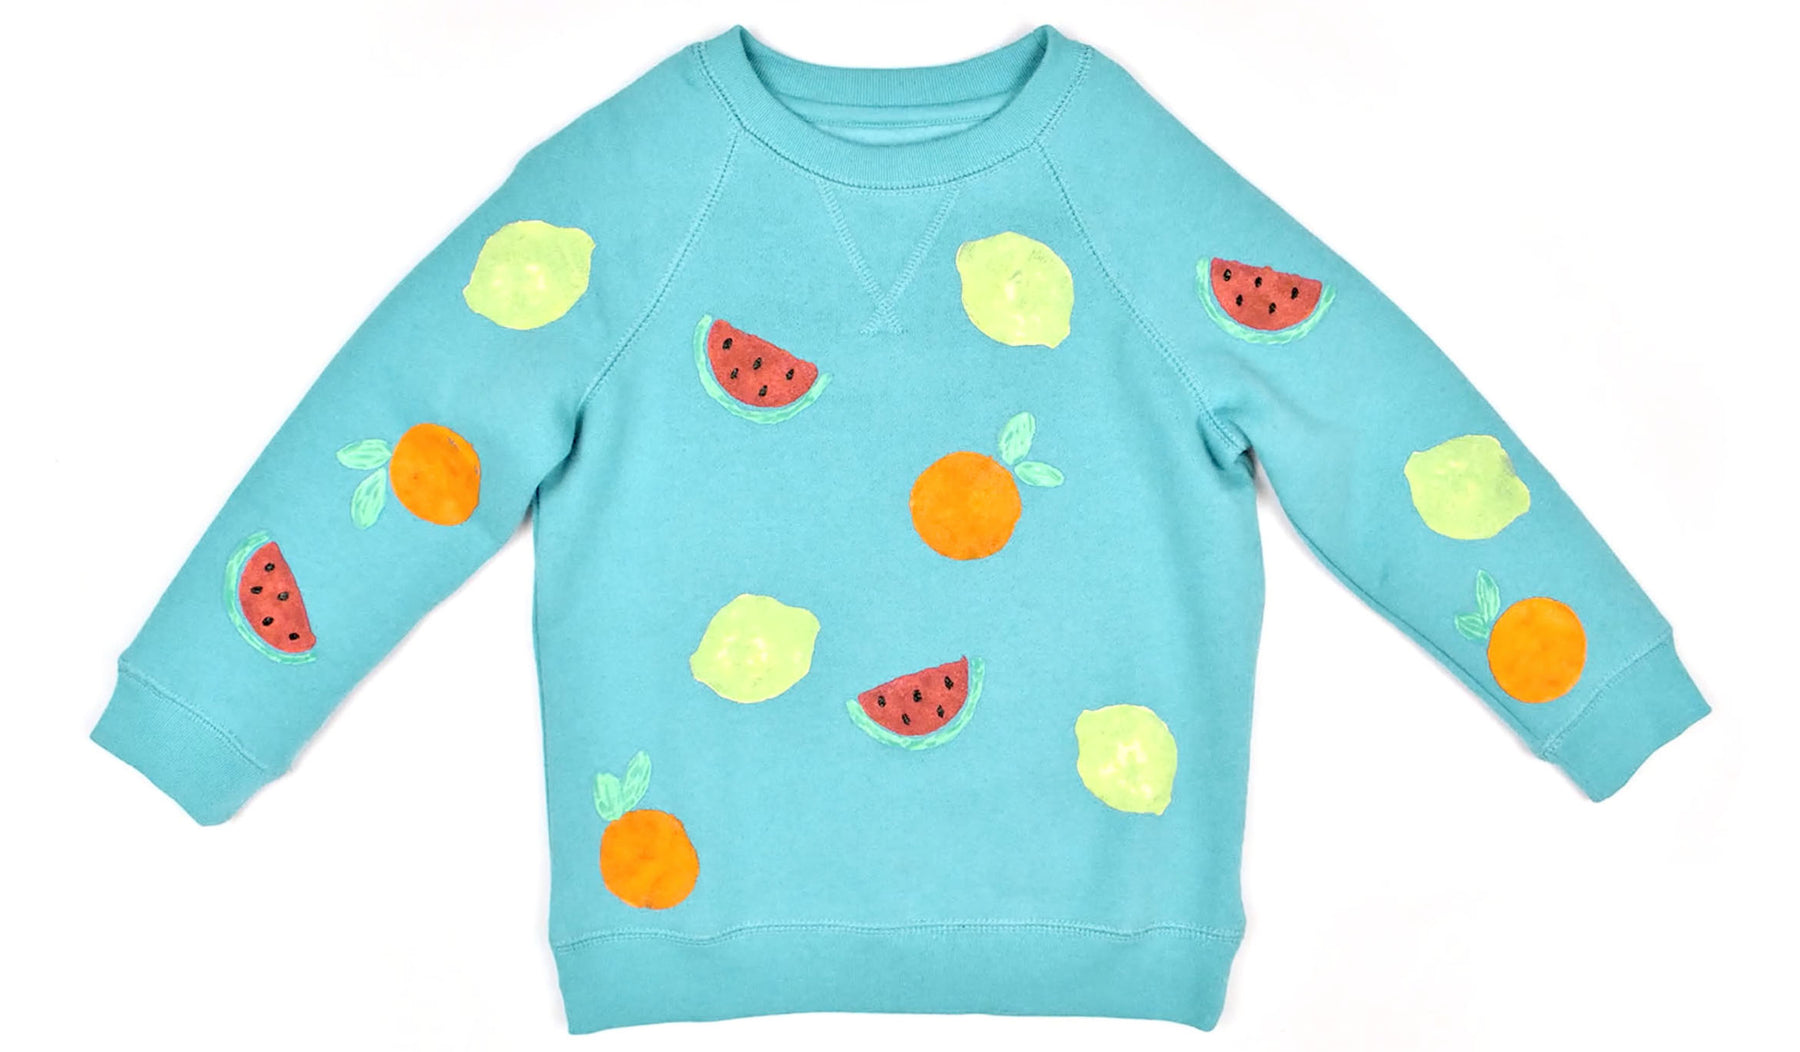 blue sweatshirt with DIY painted fruit shapes